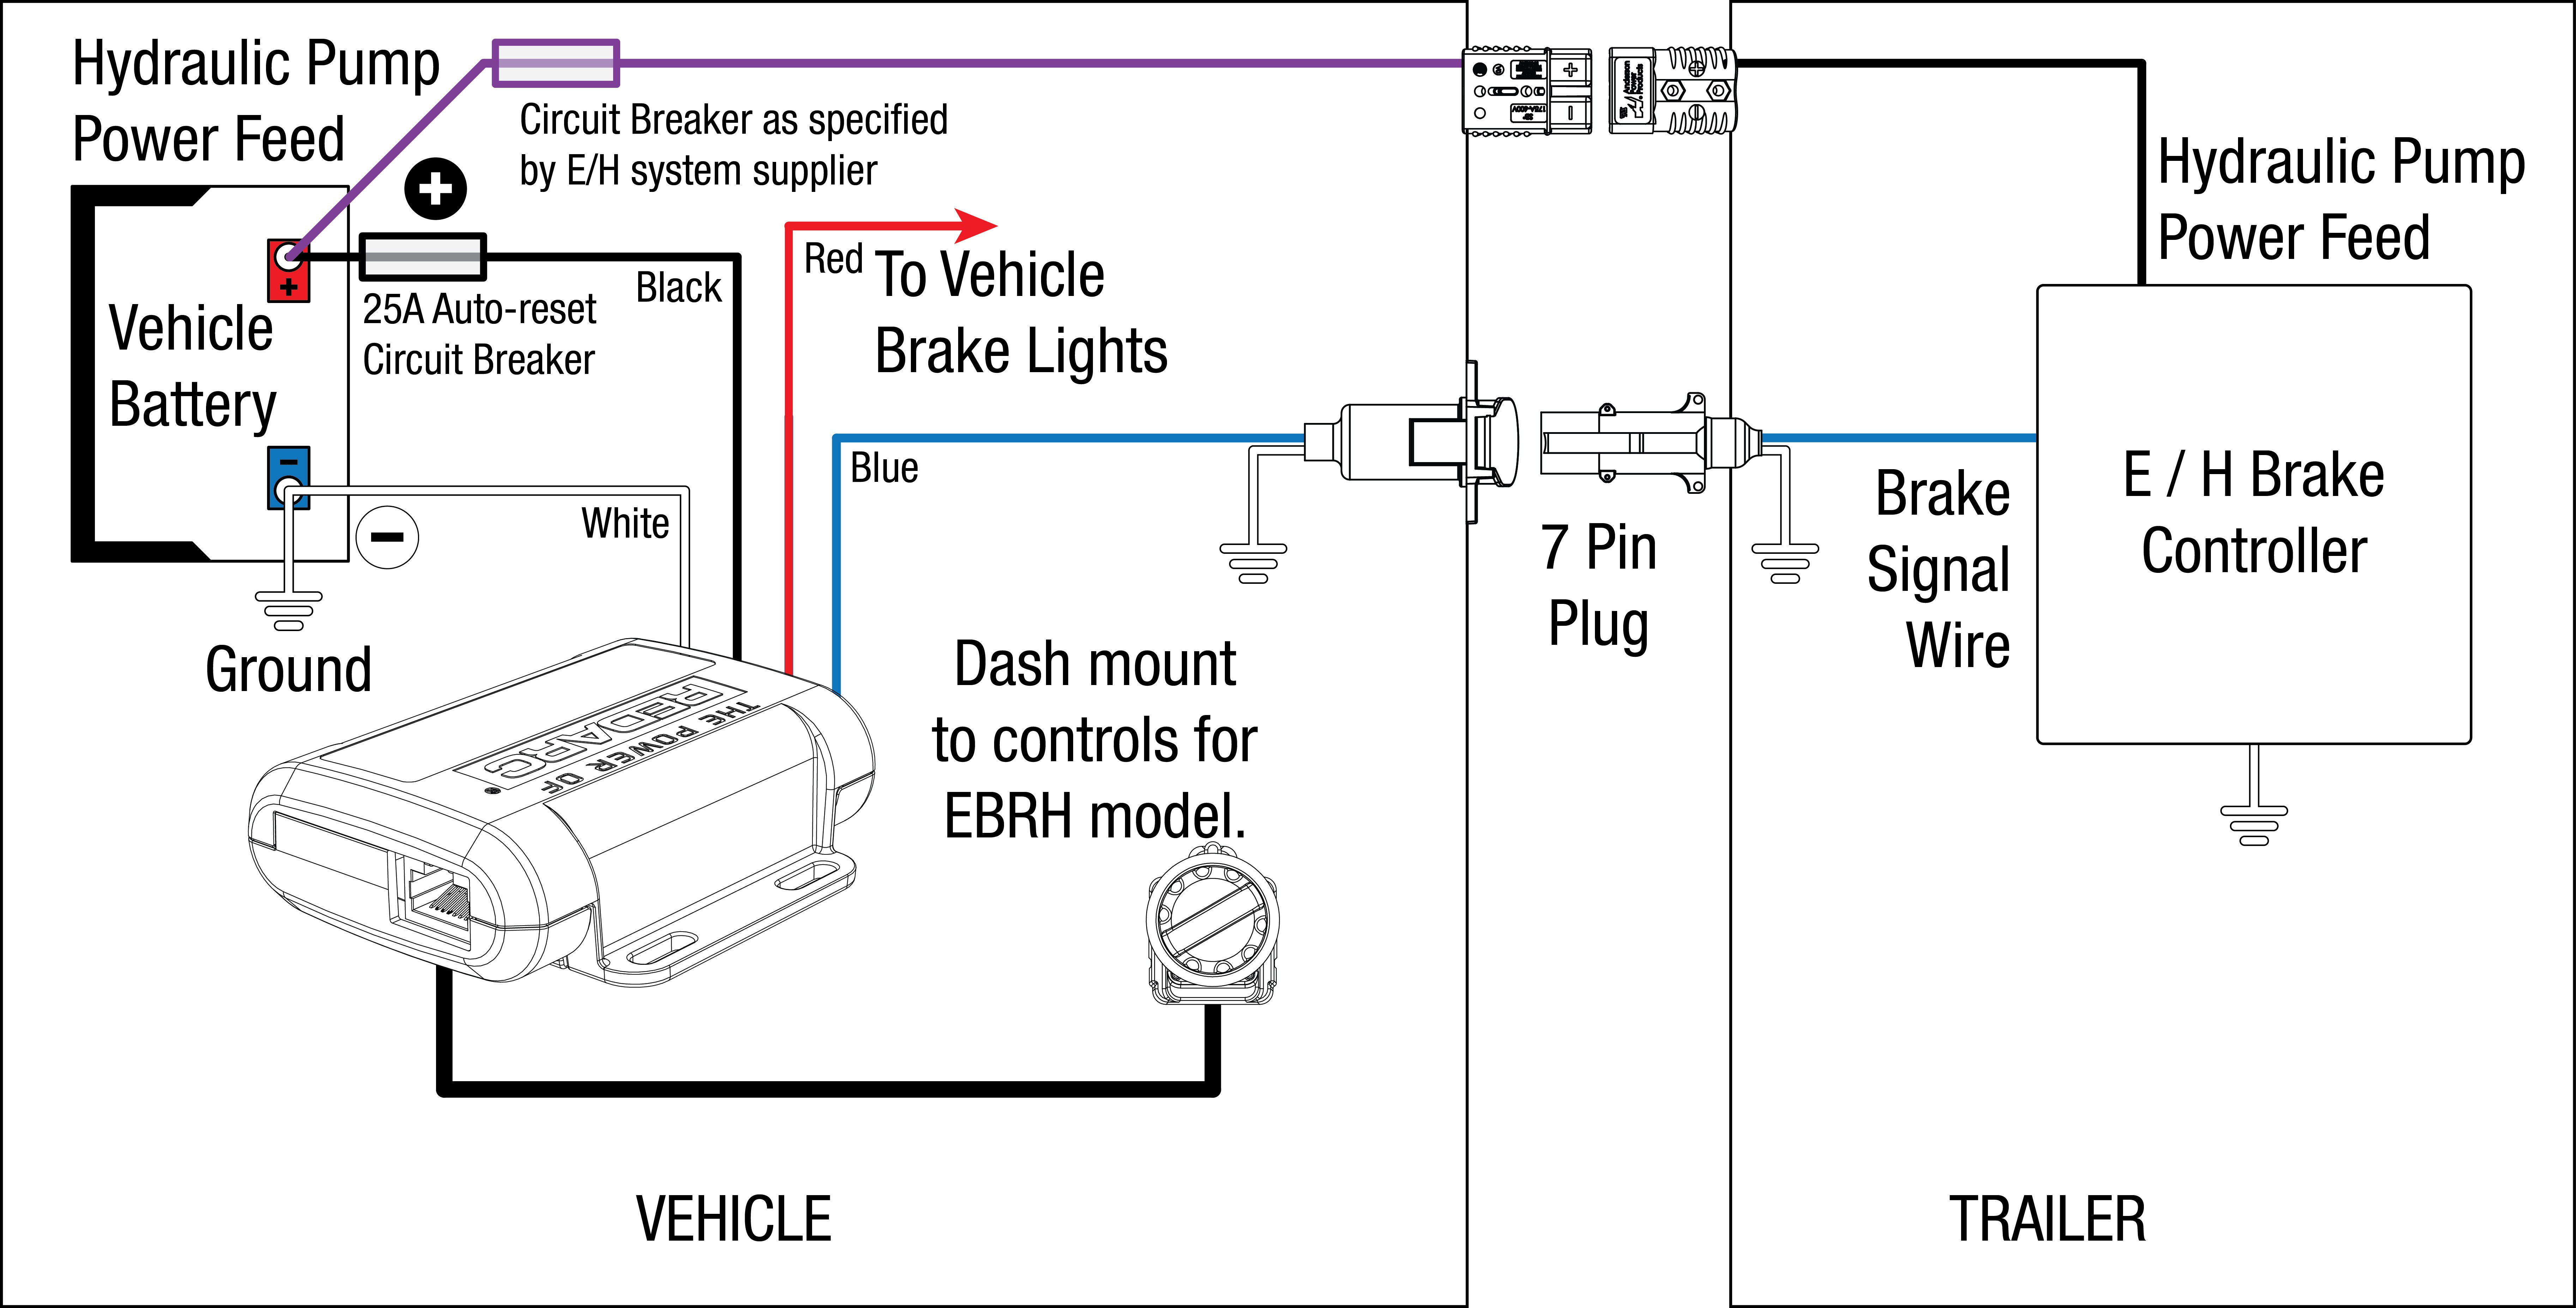 Eagle Trailer Wiring Diagram | Wiring Library - Eagle Trailer Wiring Diagram